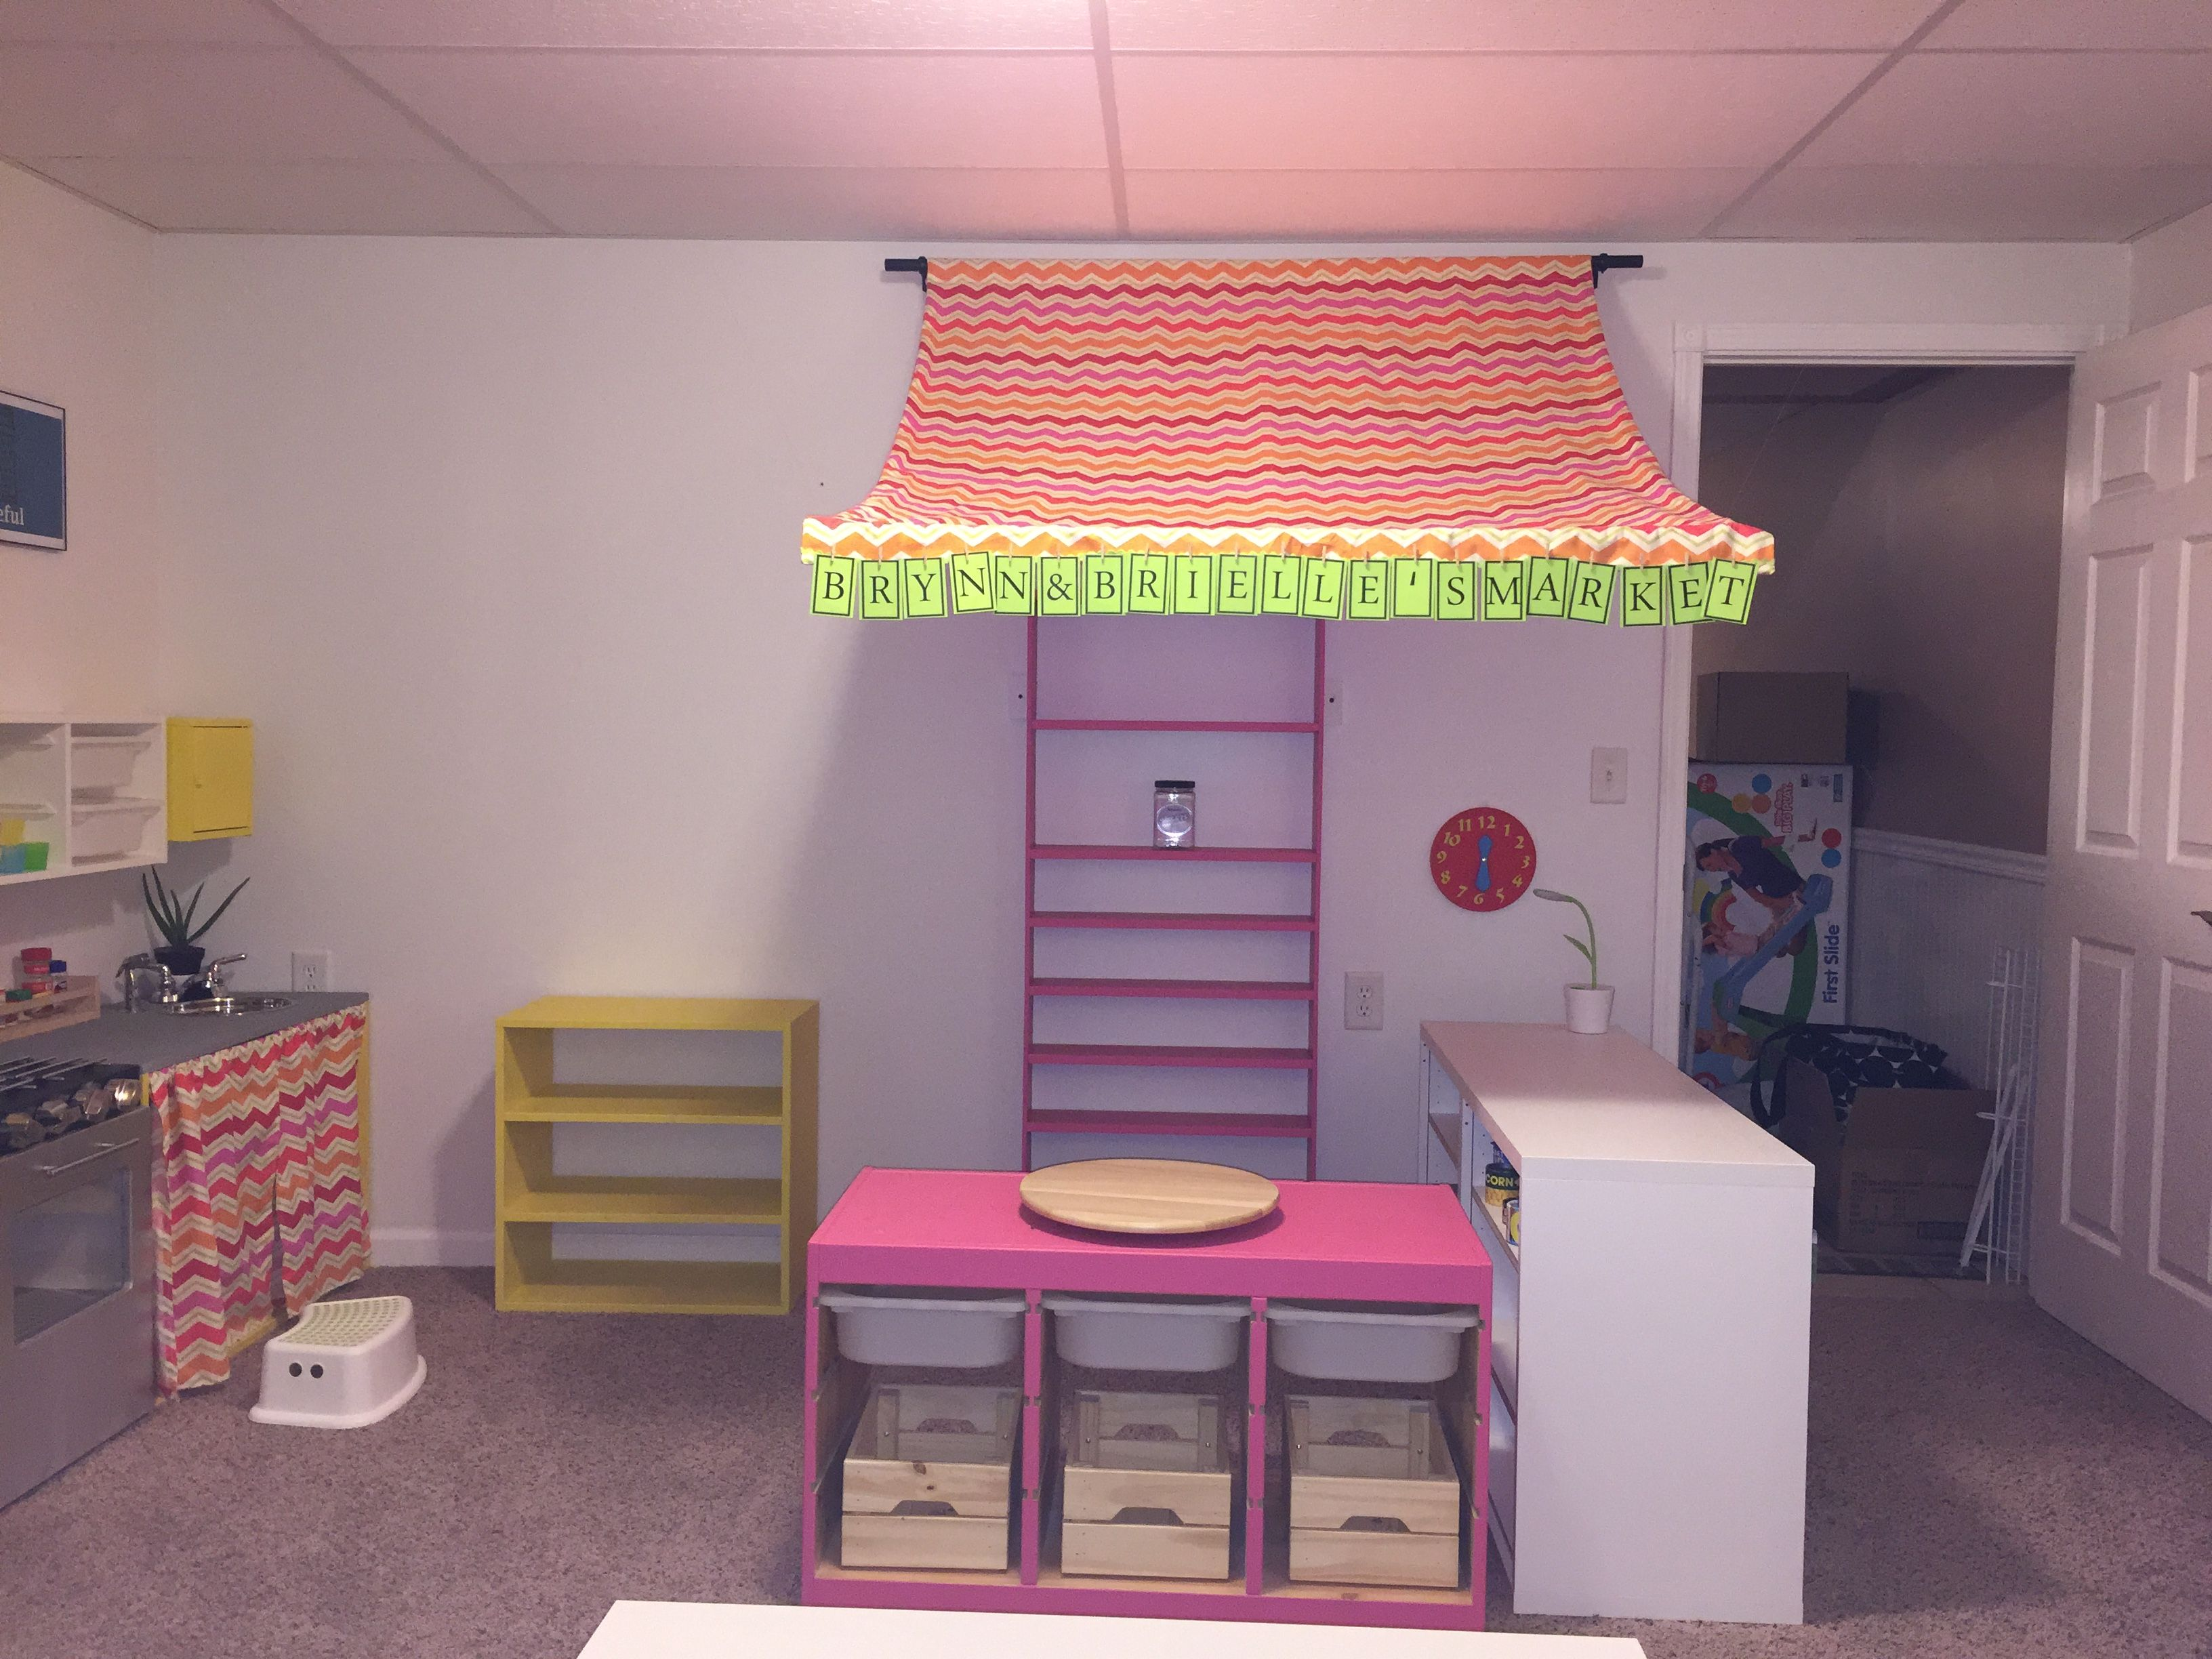 Playroom market! Playroom, Kitchen appliances, Popcorn maker